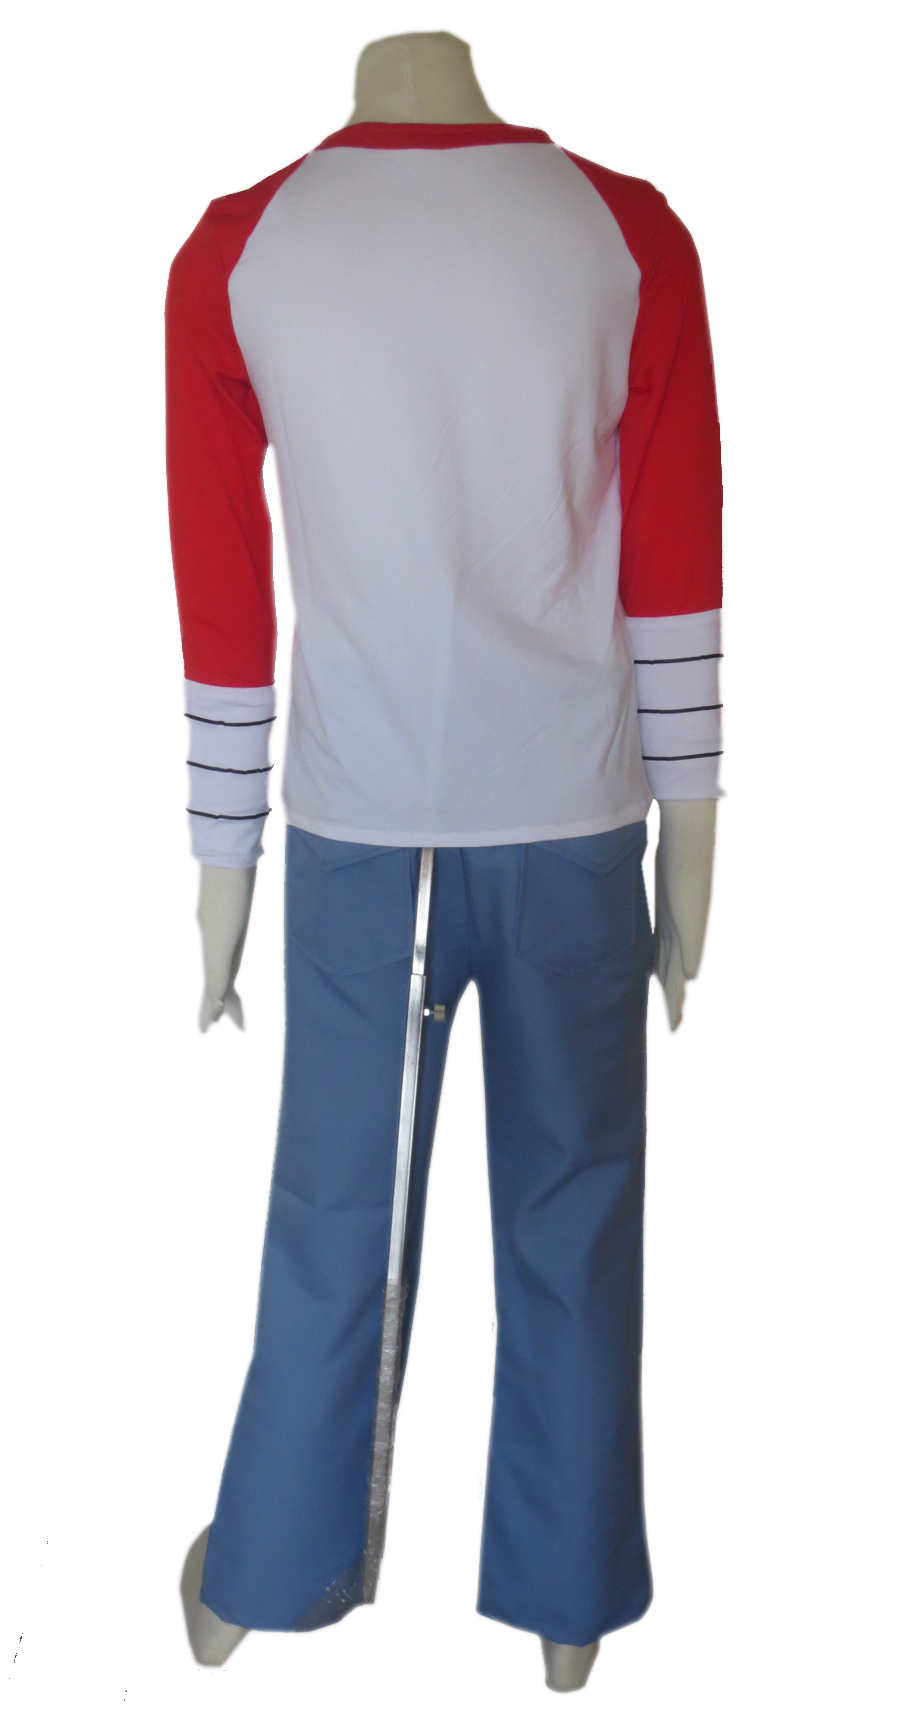 Saint Seiya Omega Pegasus Koga Uniform Cosplay Costume